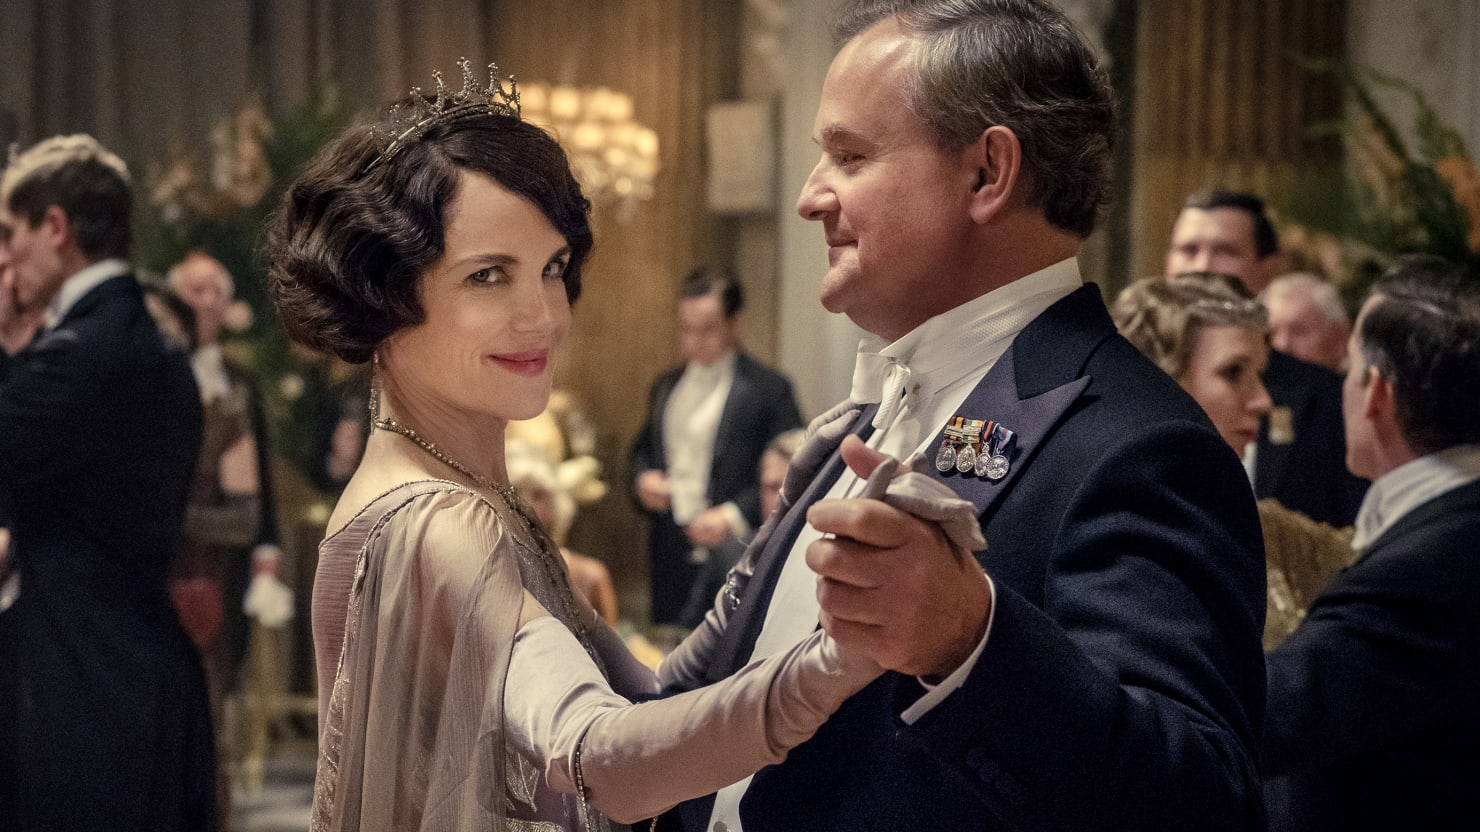 Why We Need the 'Downton Abbey' Movie, an 'Oasis' From the 'Relentless Anger' of Life